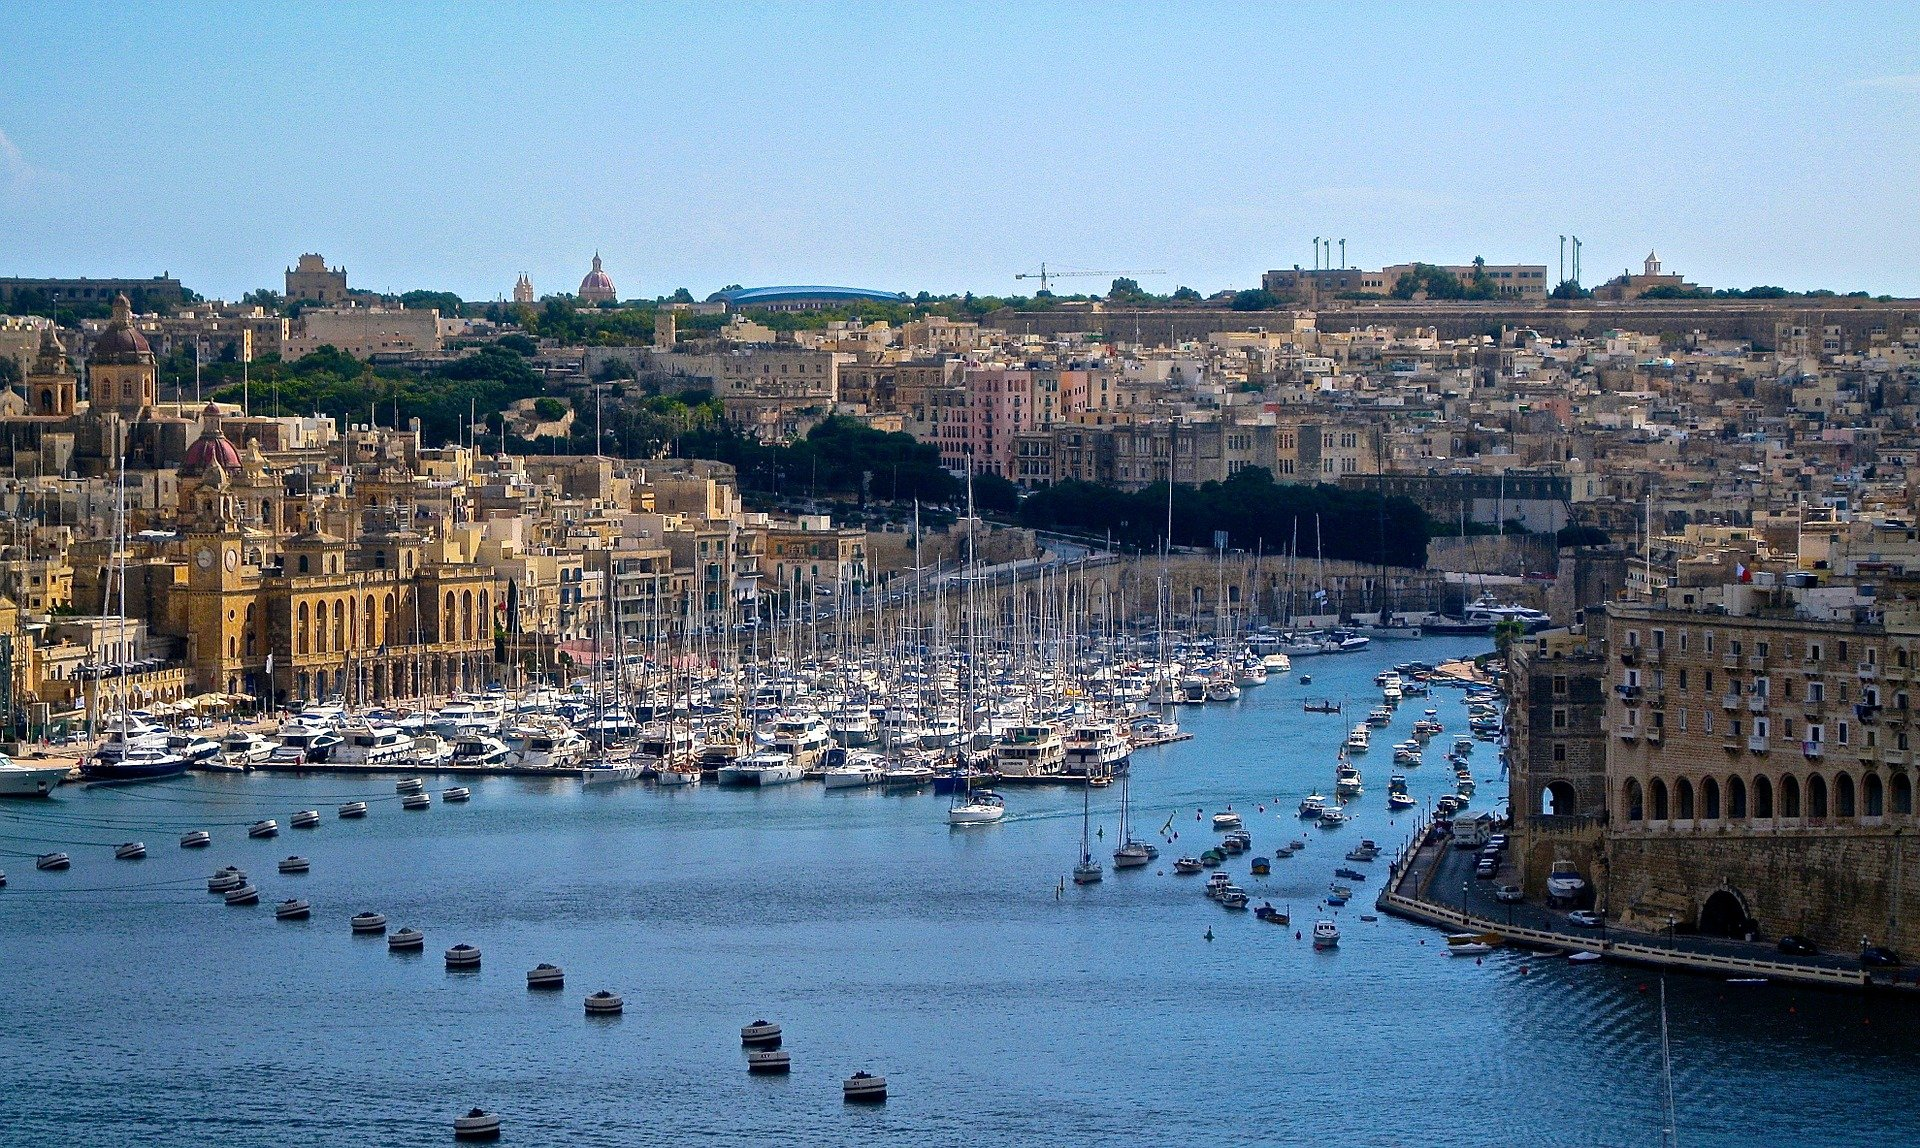 Malta photo by antheah